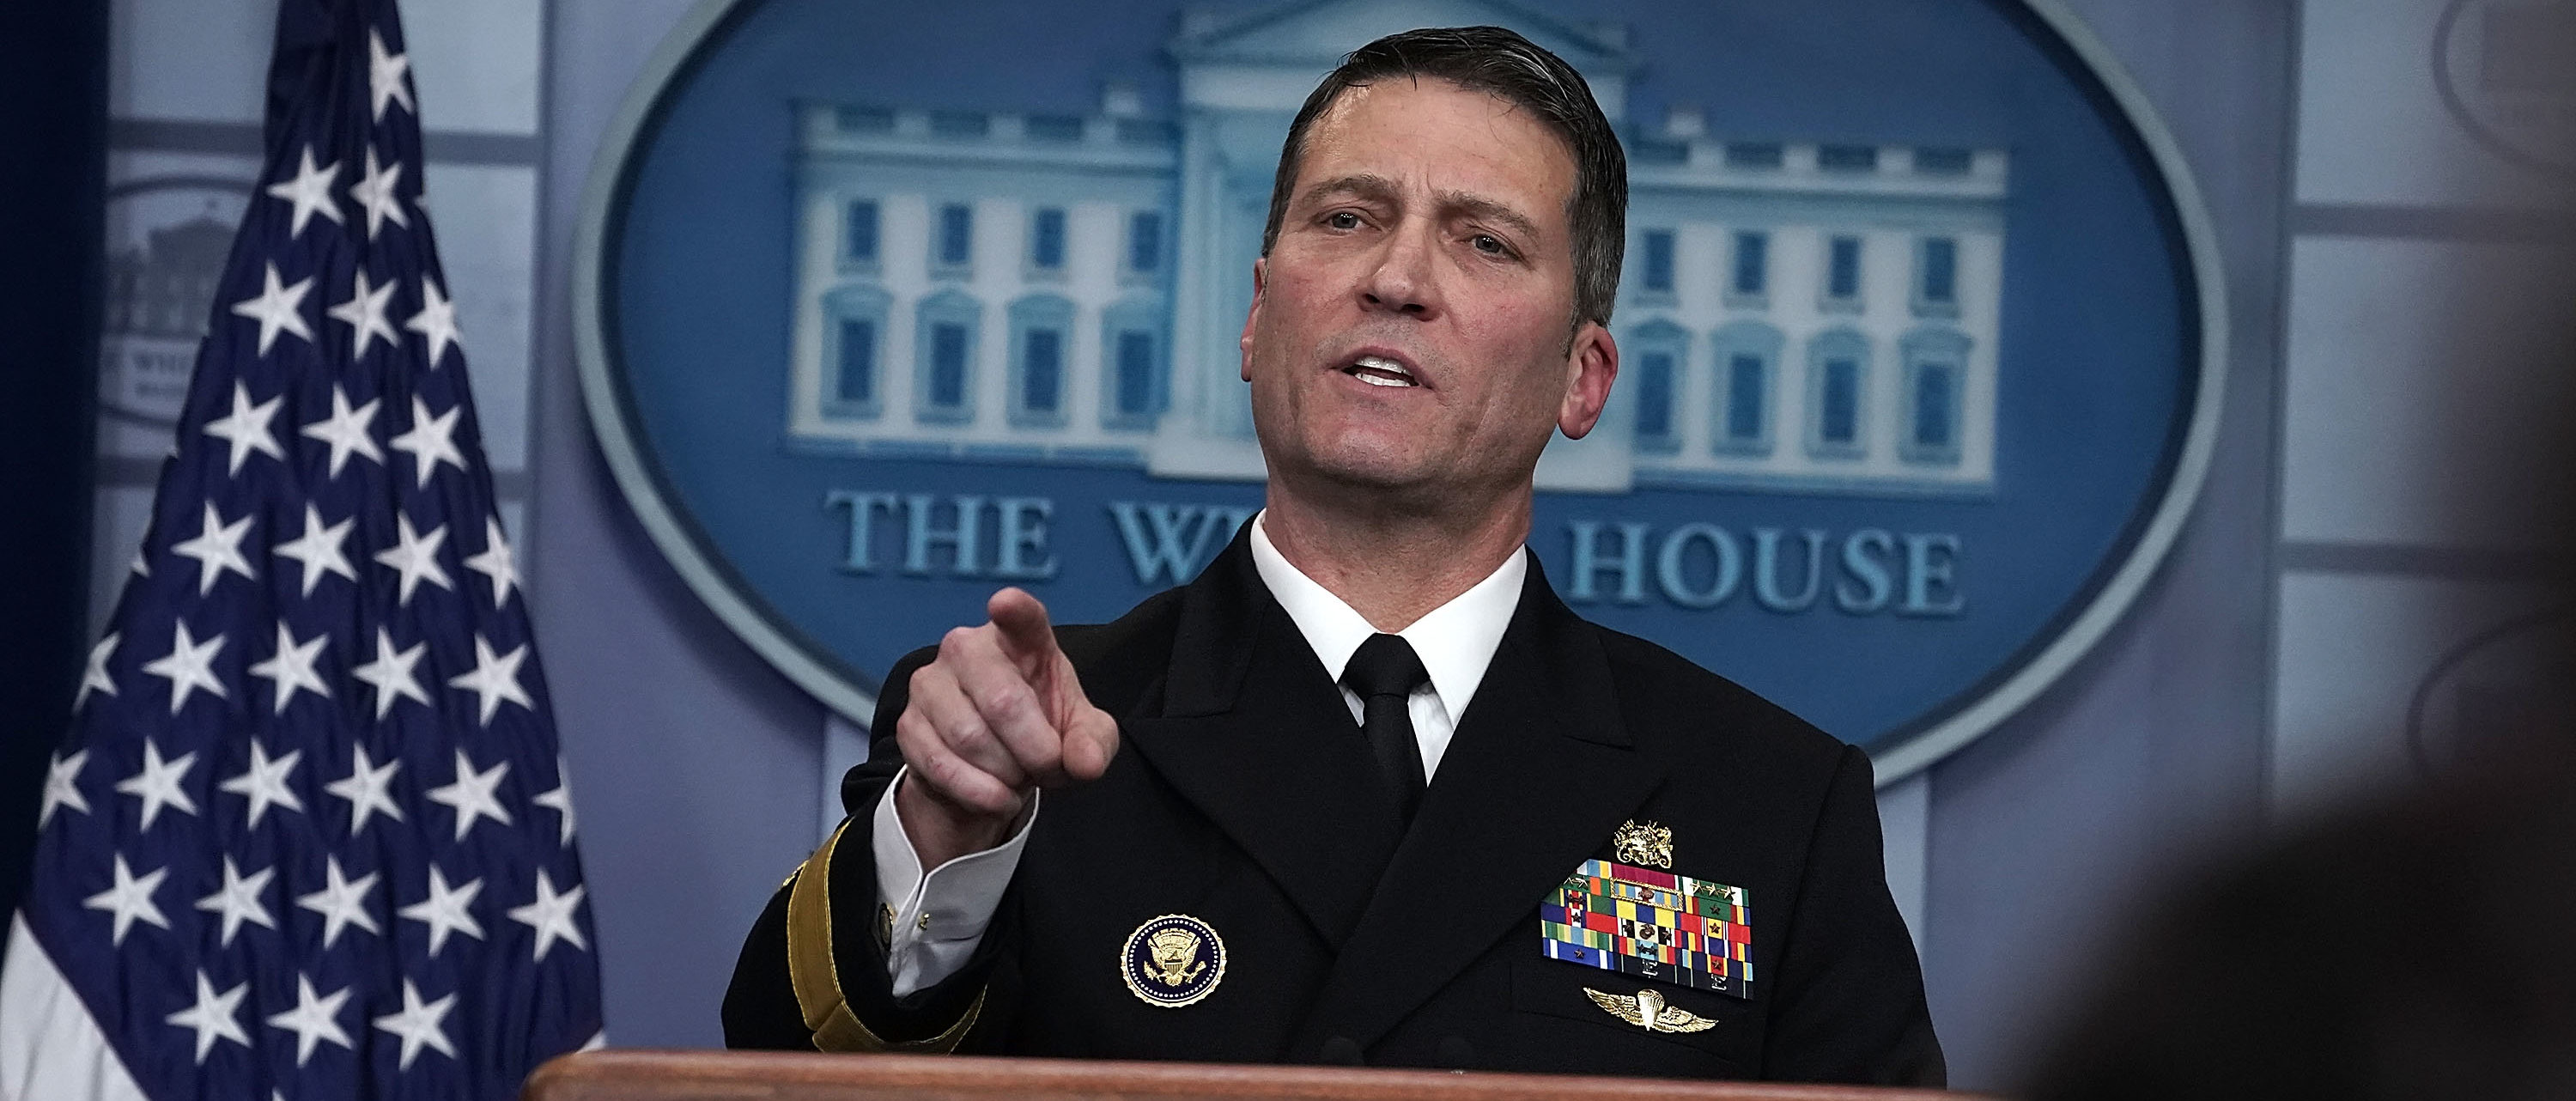 WASHINGTON, DC - JANUARY 16: Physician to U.S. President Donald Trump Dr. Ronny Jackson speaks during the daily White House press briefing at the James Brady Press Briefing Room of the White House January 16, 2018 in Washington, DC. Dr. Jackson discussed the details of President Trump's physical check-up from last week. (Photo by Alex Wong/Getty Images)